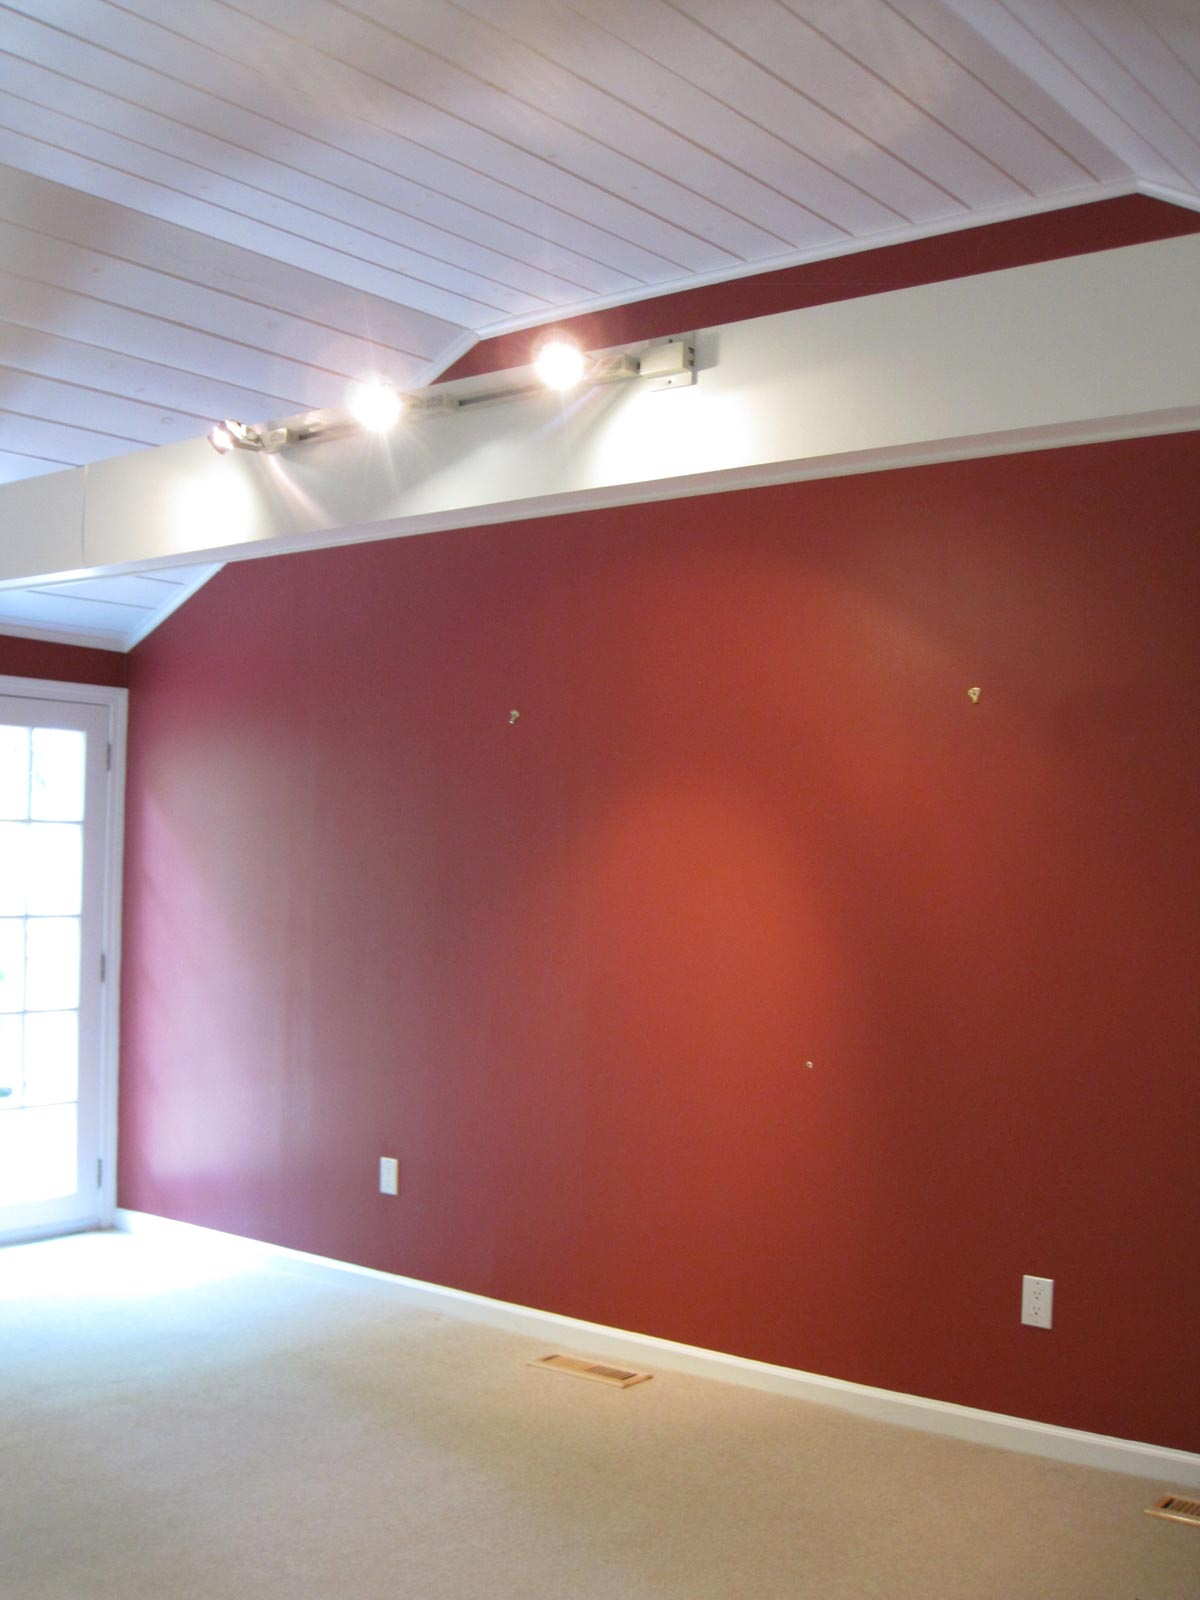 Home remodel: Our family room before remodeling!